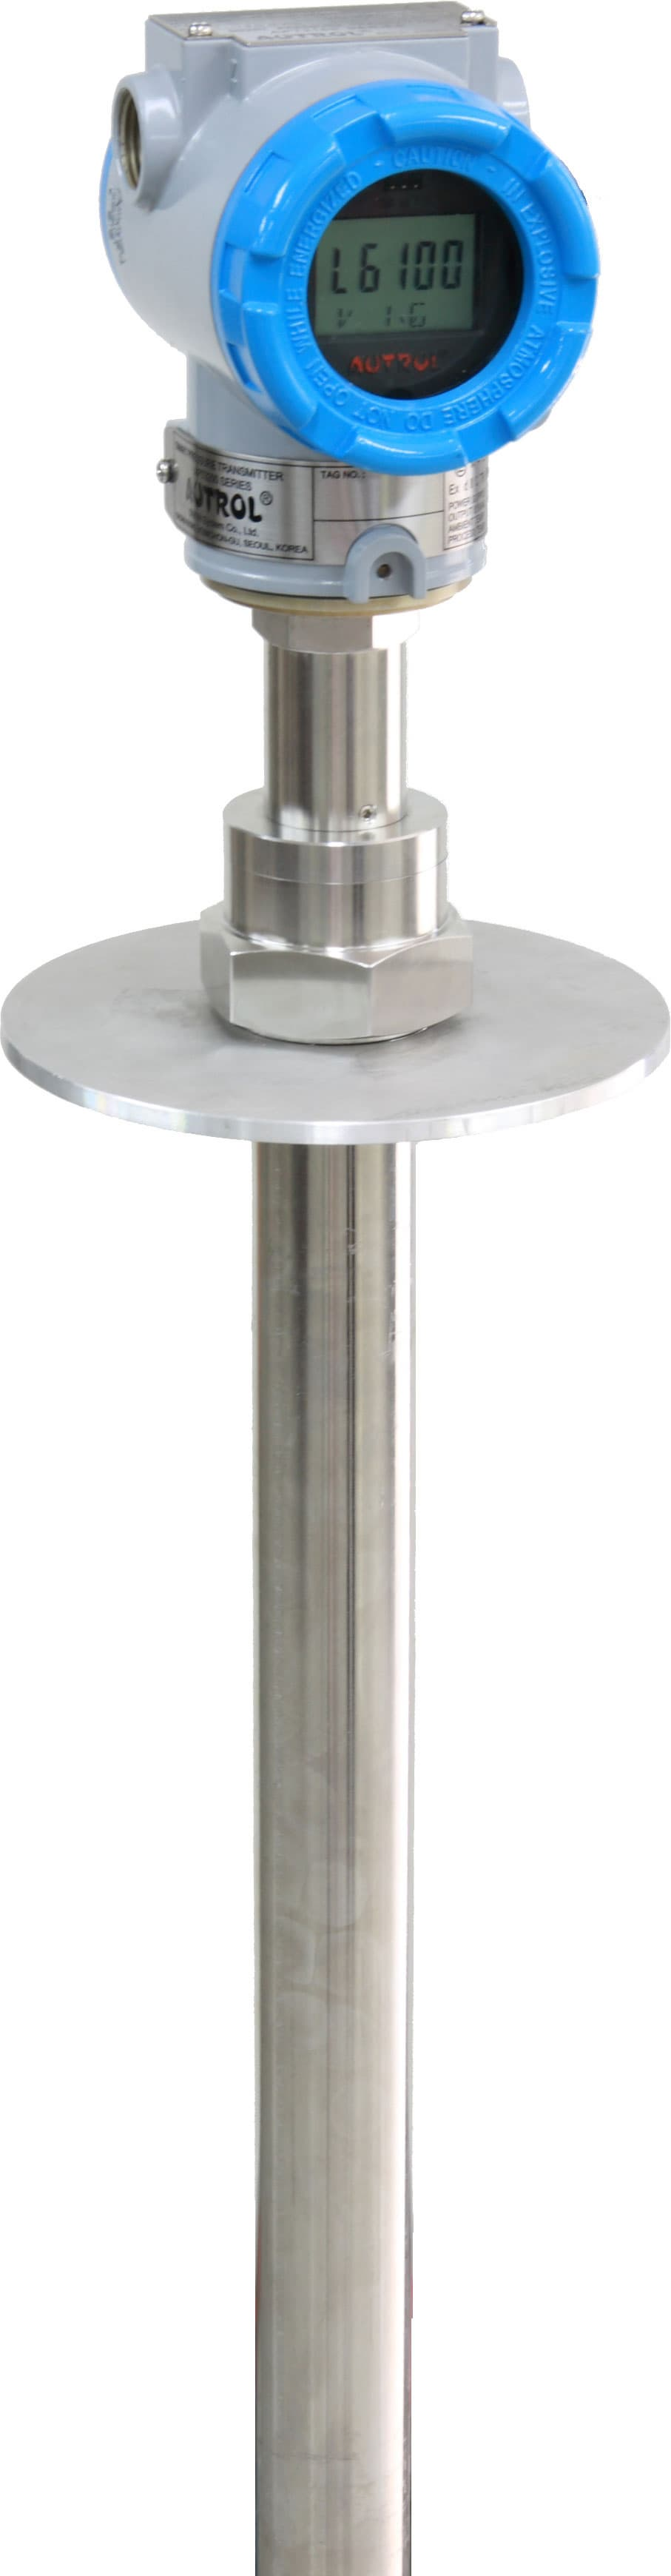 Level Measuring Instruments : Guided wave radar level transmitter from duon system co